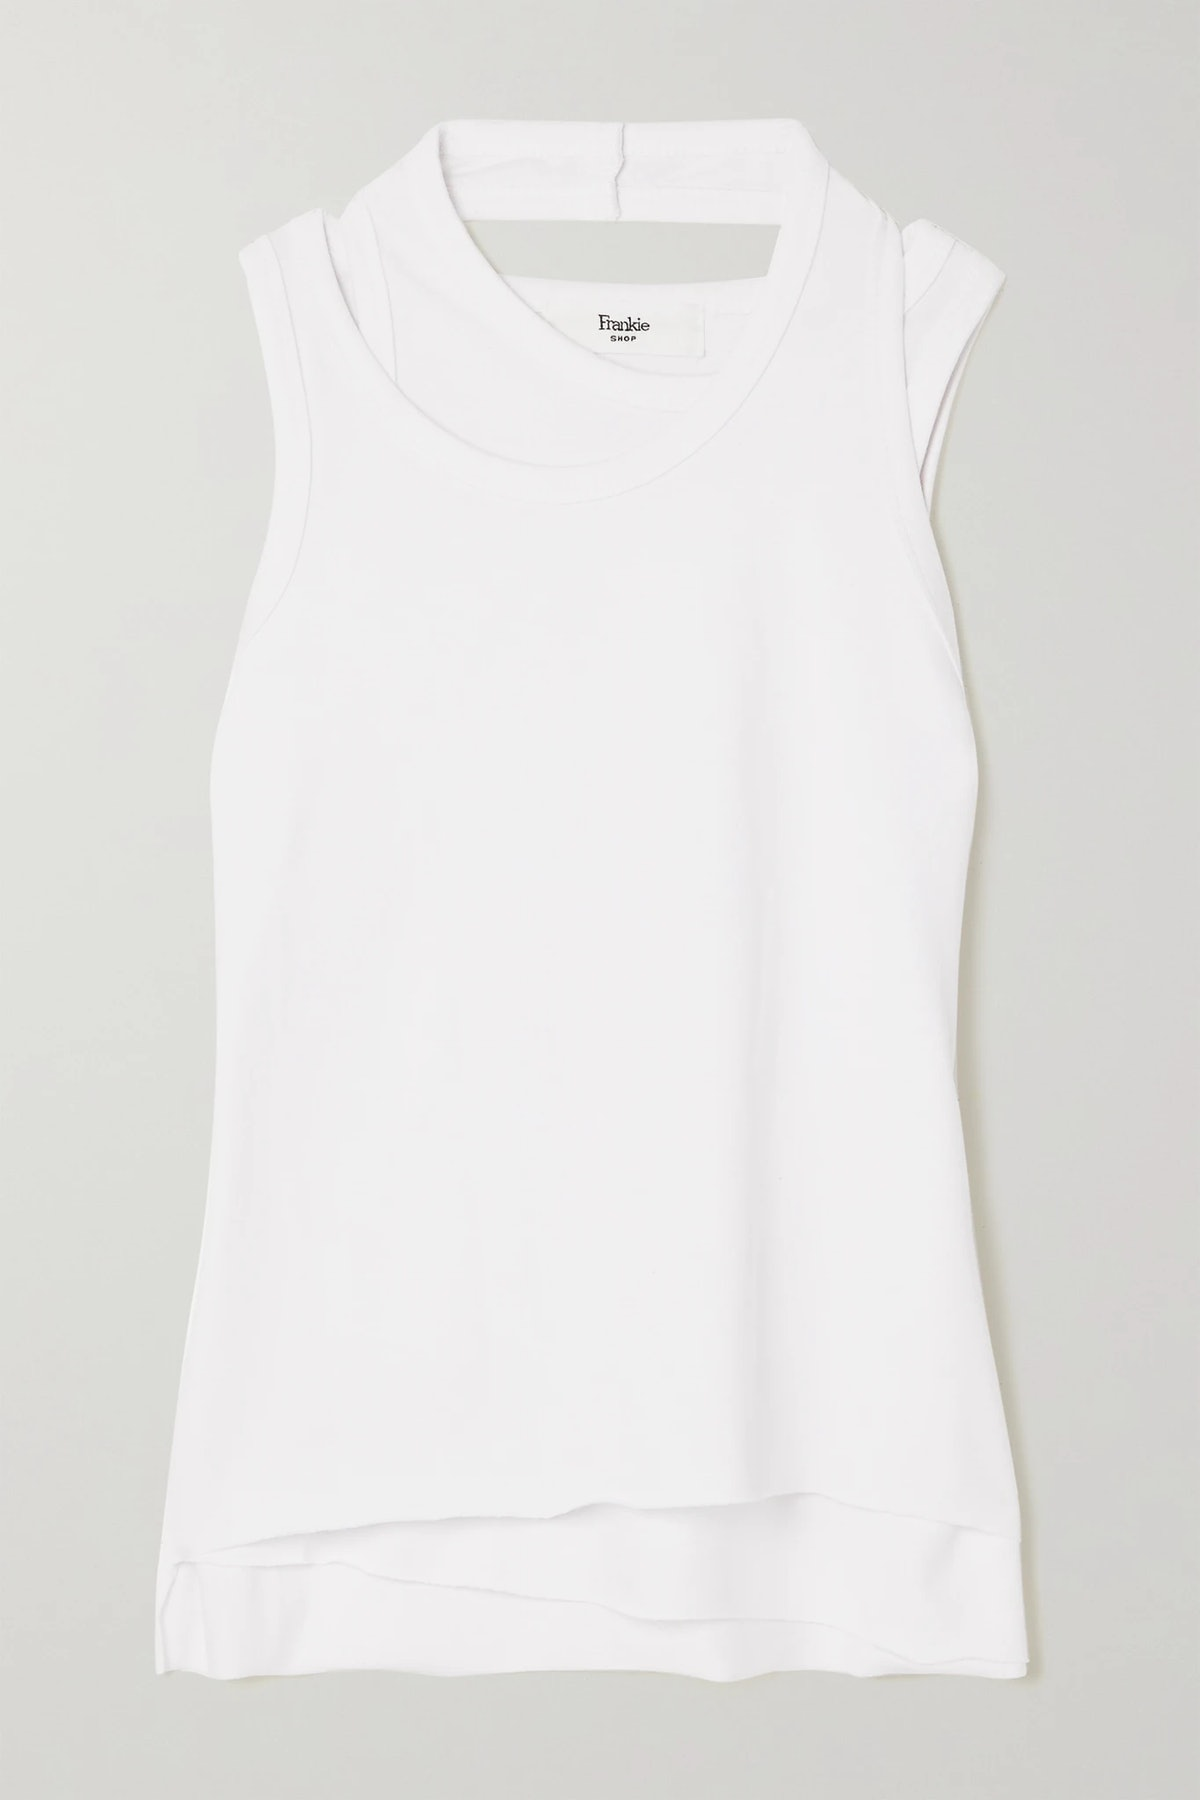 The Frankie Shop's Layered White Tank.